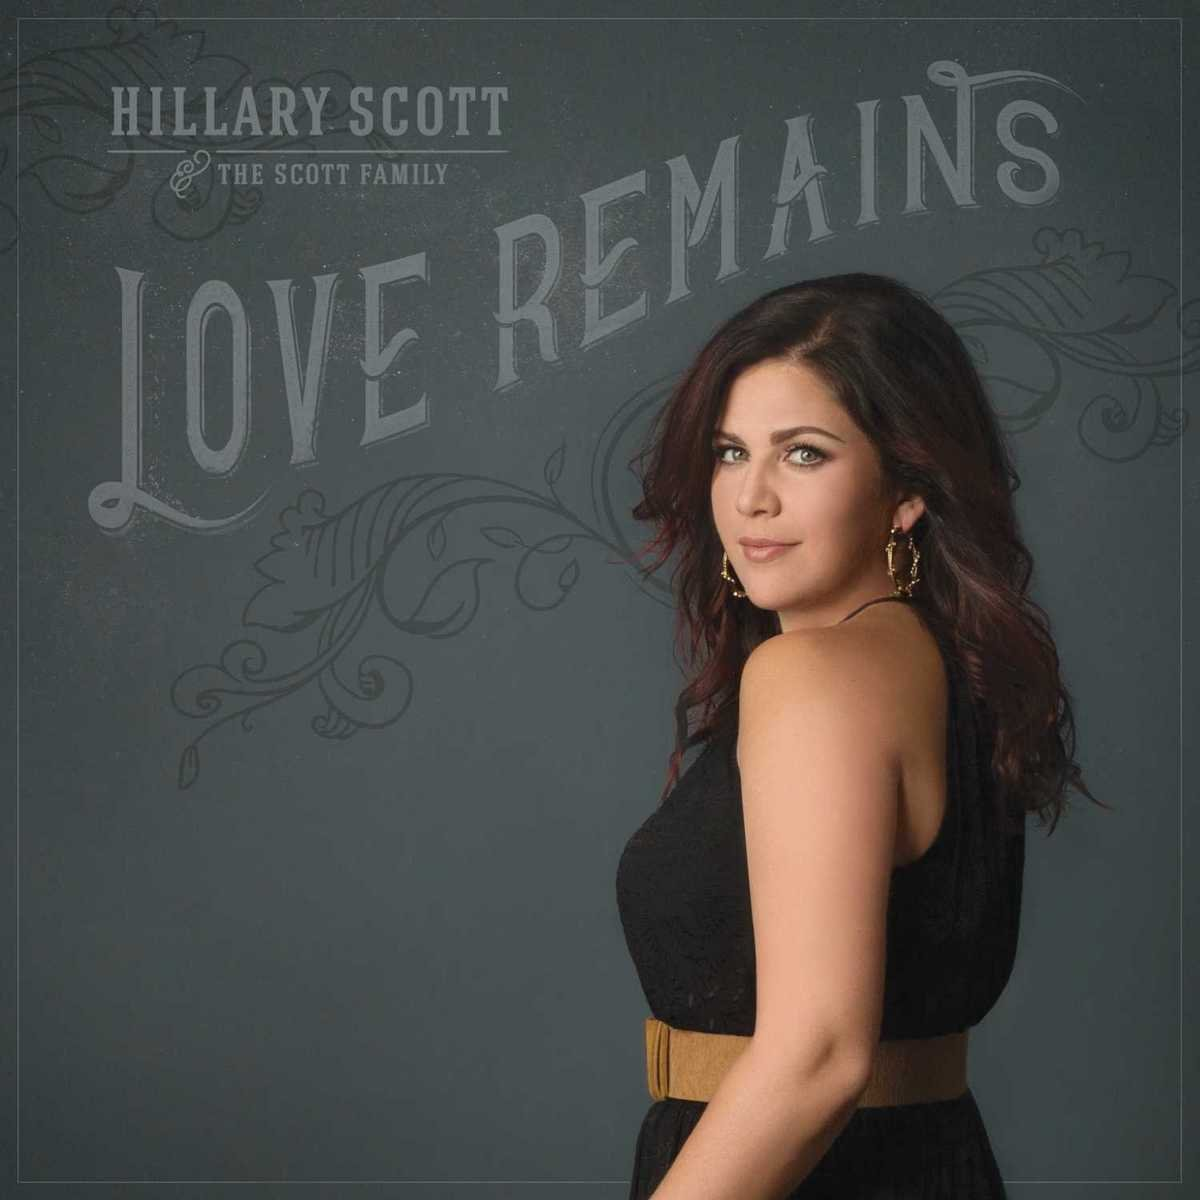 Love Remains by Hillary Scott & The Scott Family